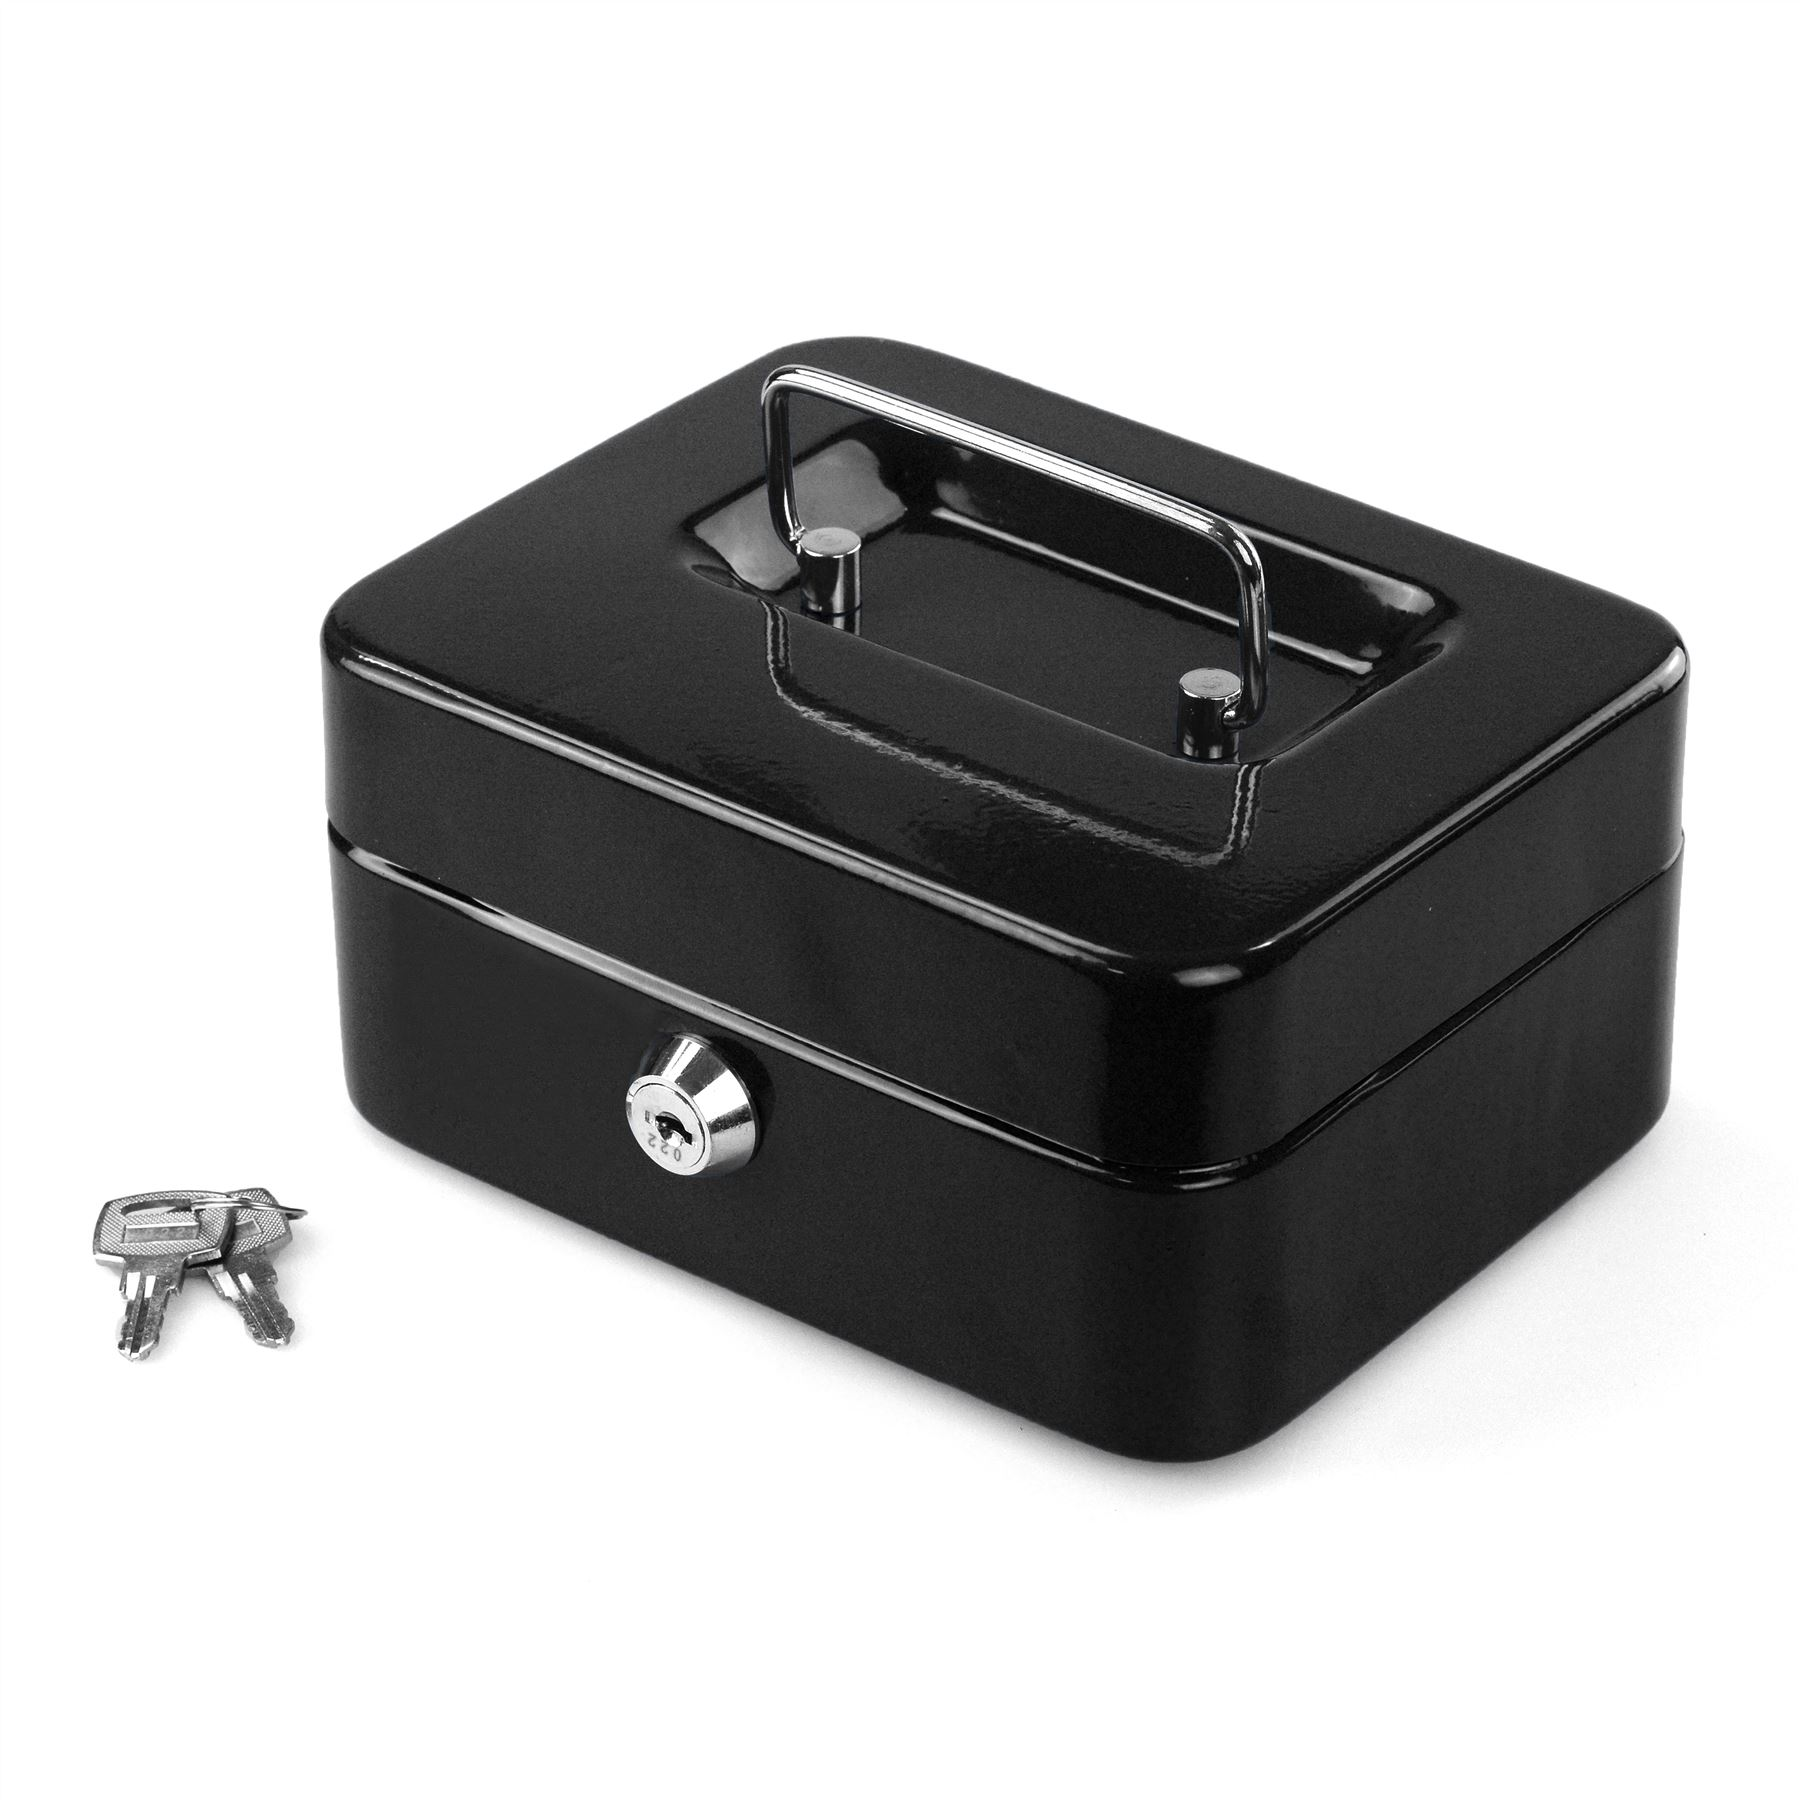 Petty-Cash-Safety-Deposit-Box-Metal-Security-Steel-Money-Bank-Coin-Tray-holder thumbnail 3